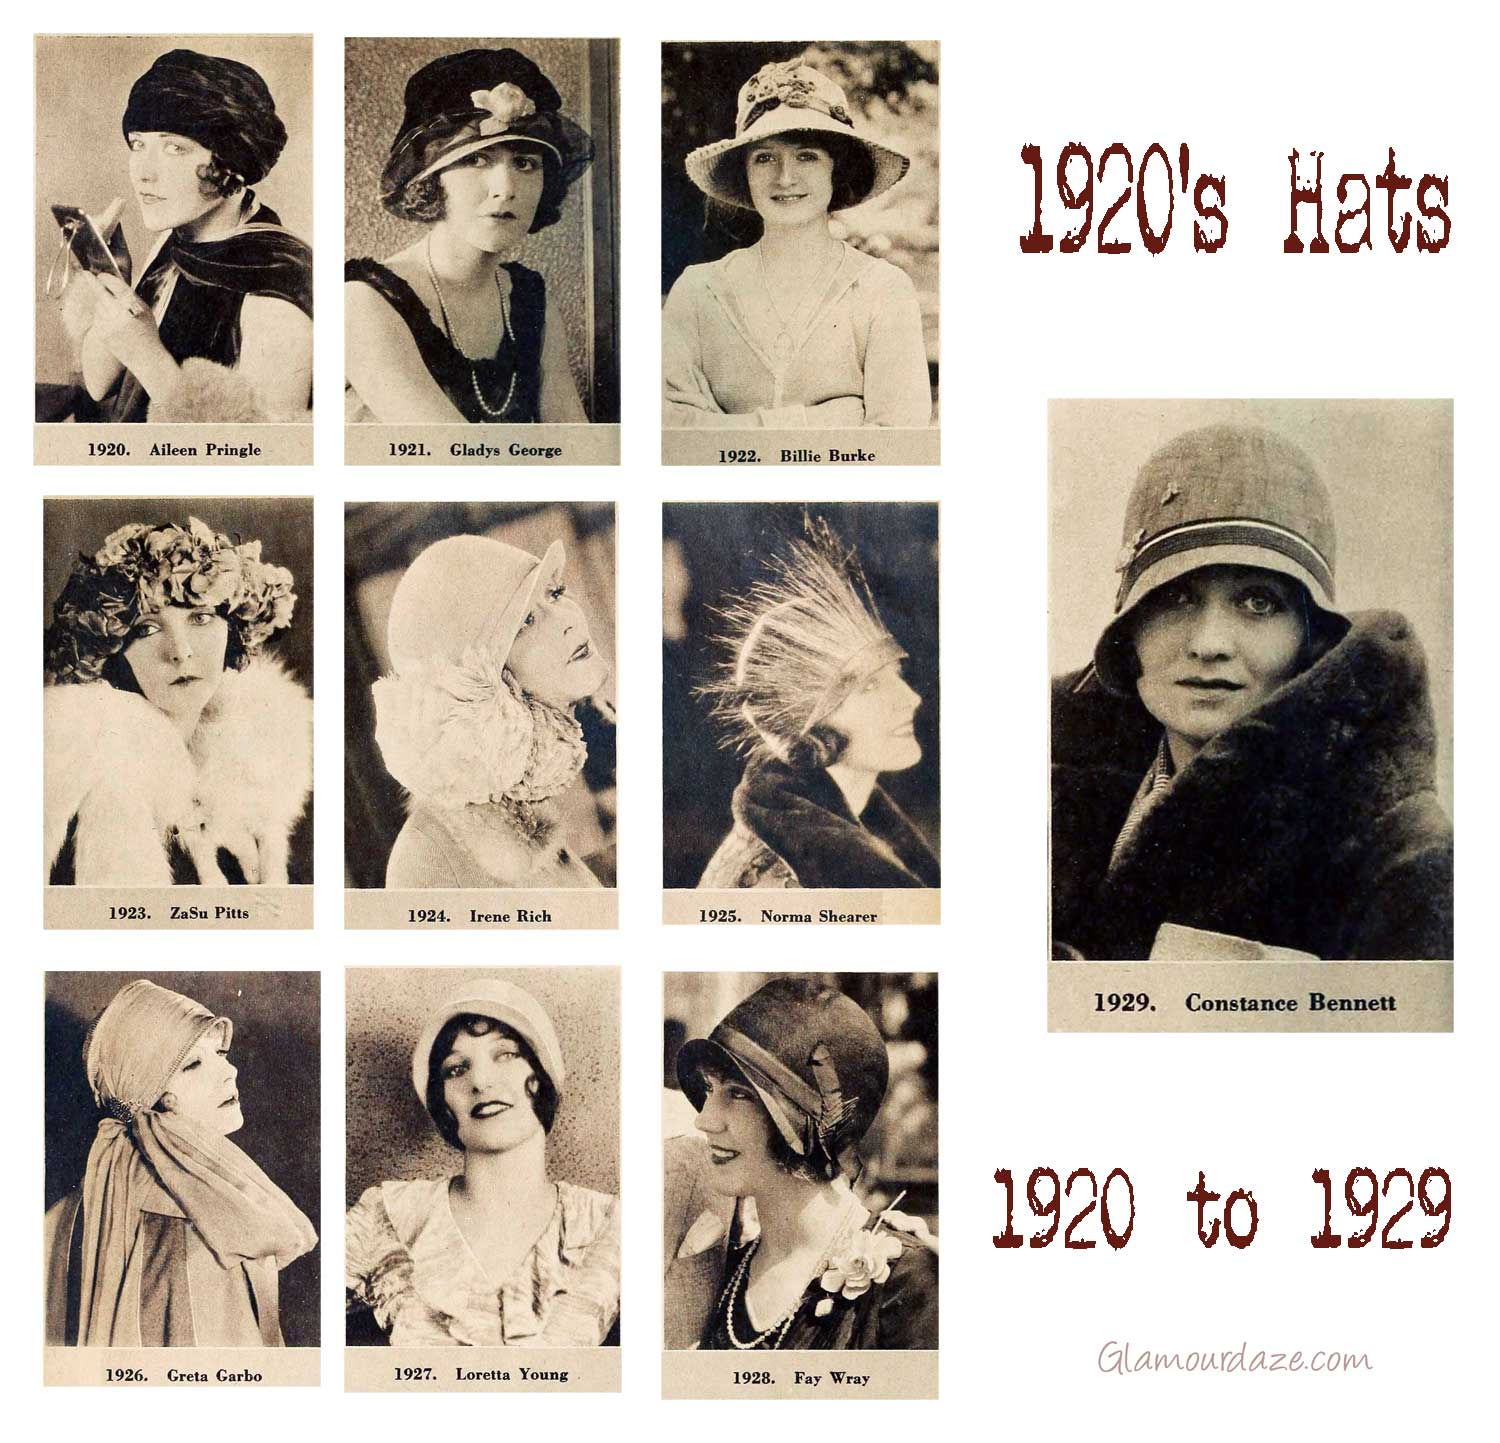 1920's hats -Cloche Hats Timeline - 1920 to 1929